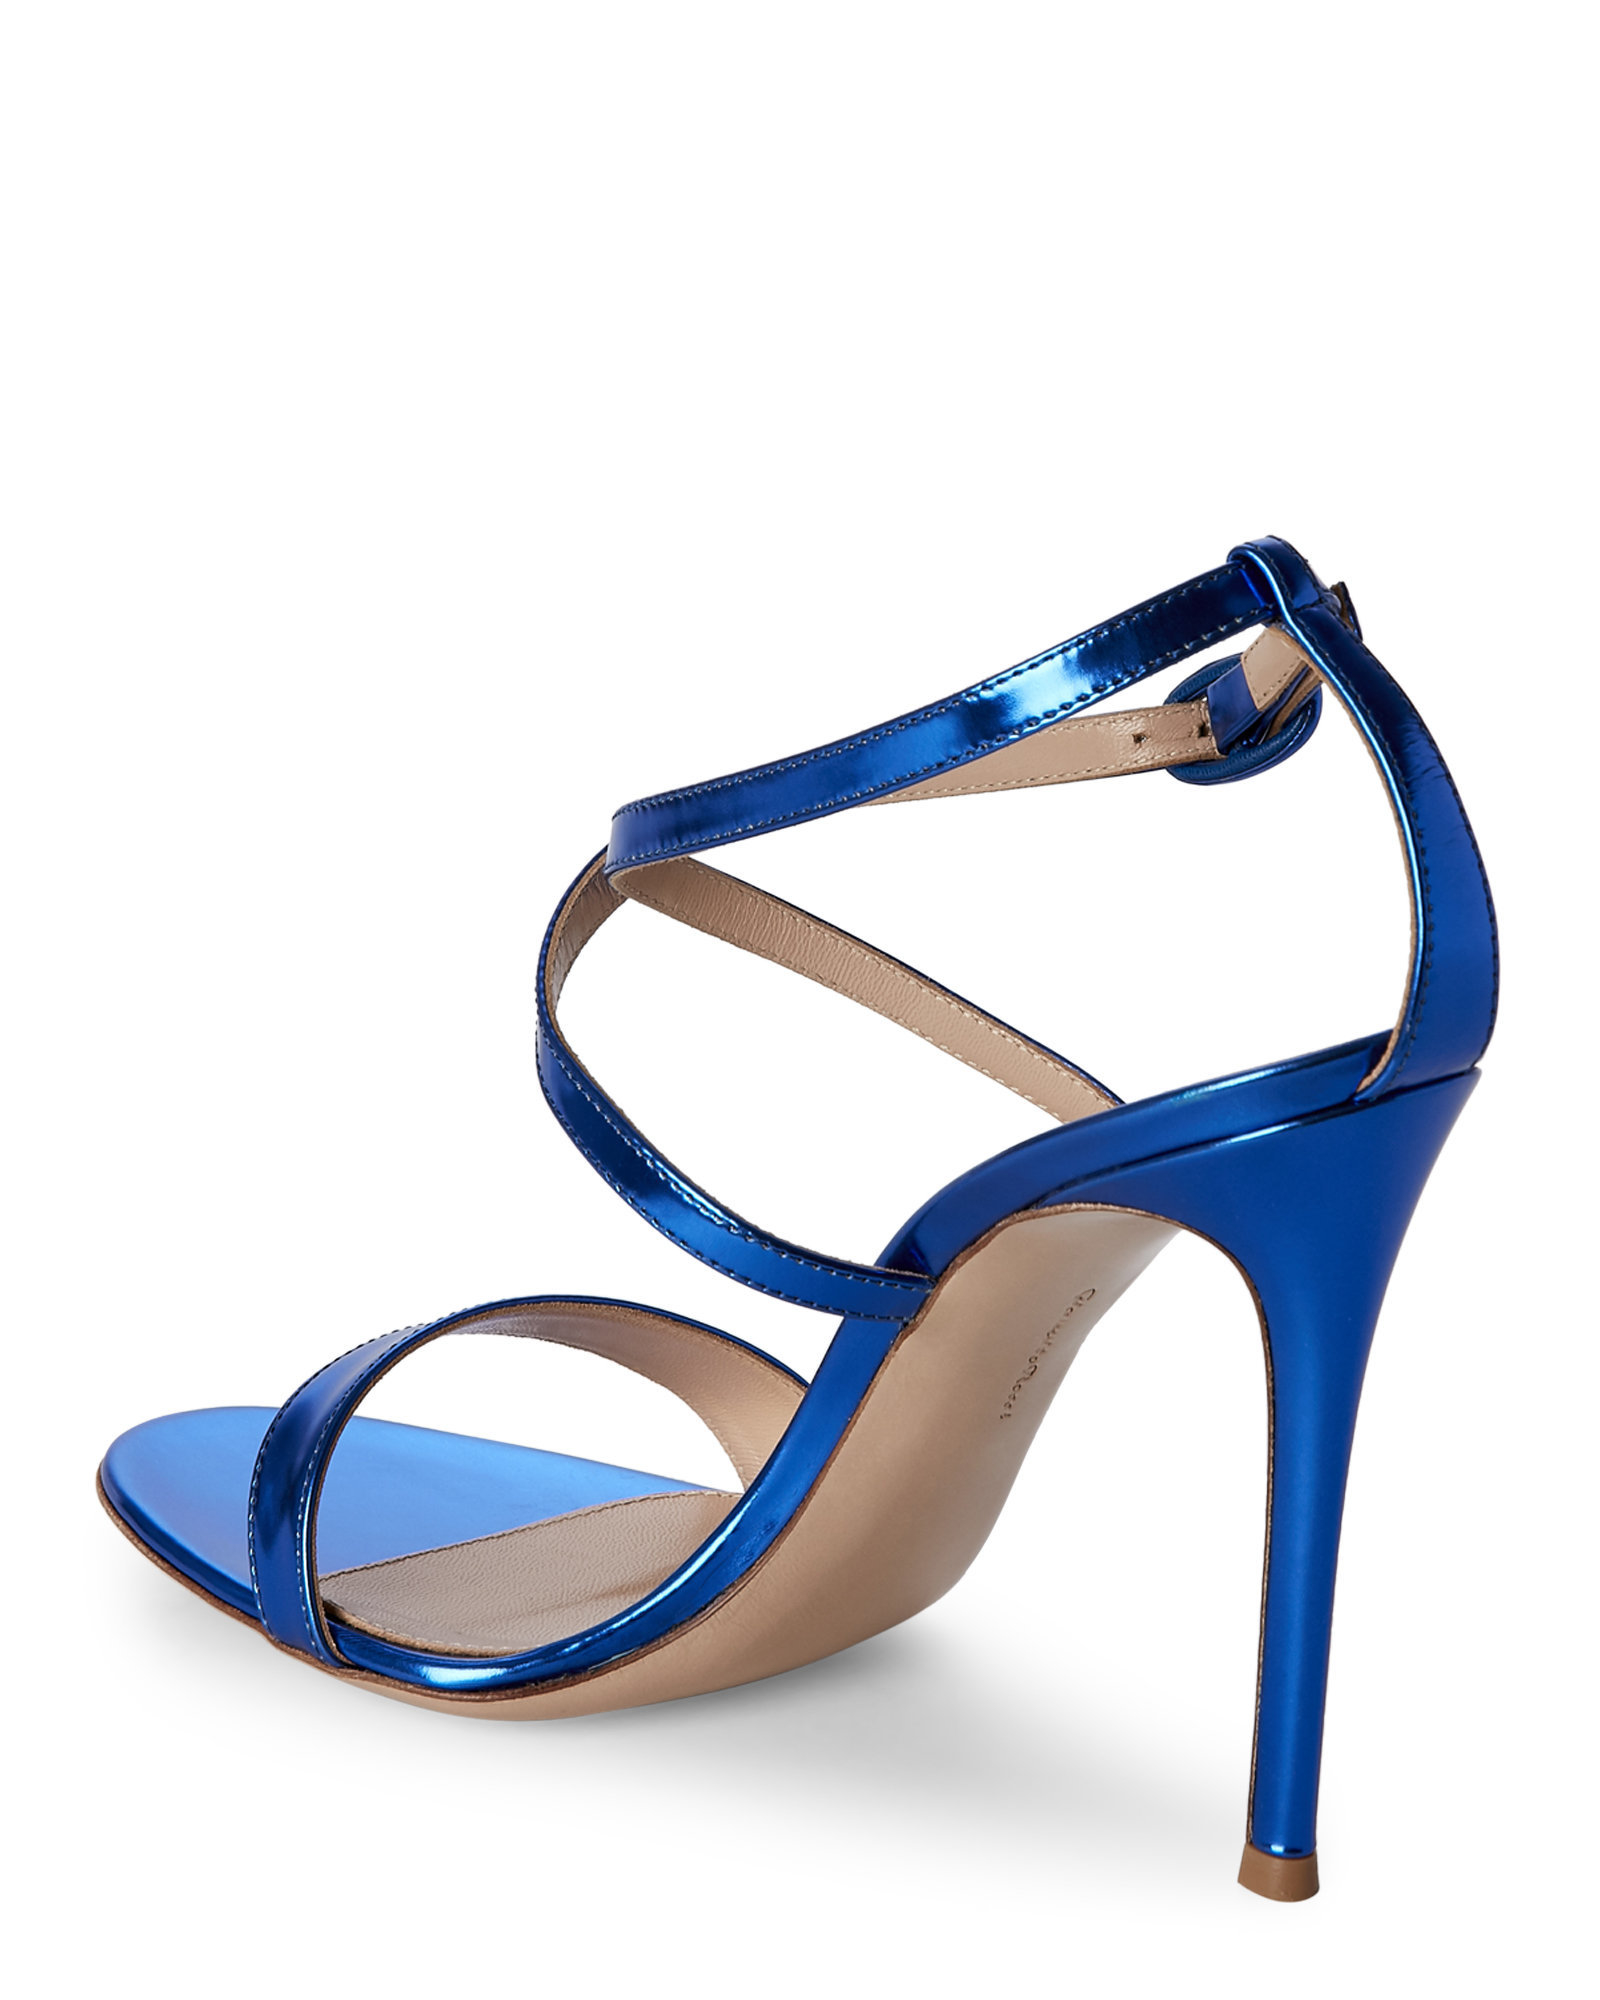 Lyst Gianvito Rossi Metallic Cobalt Strappy Sandals In Blue